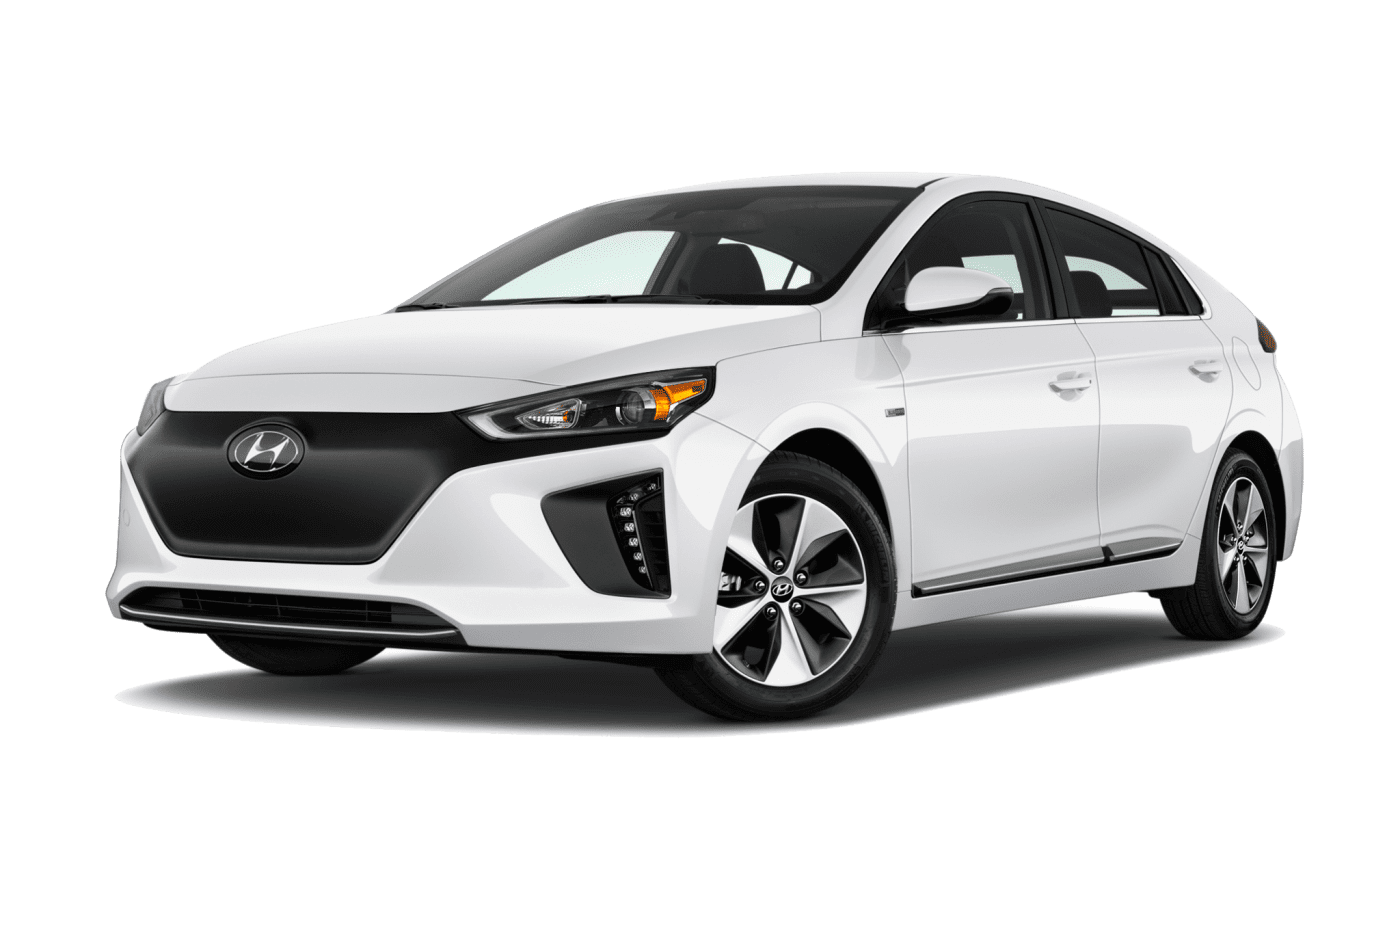 https://www.zakelijkelektrischleasen.nl/wp-content/uploads/2017/10/2017-hyundai-ioniq-electric-electric-limited-hatchback-low-aggressive-1.png